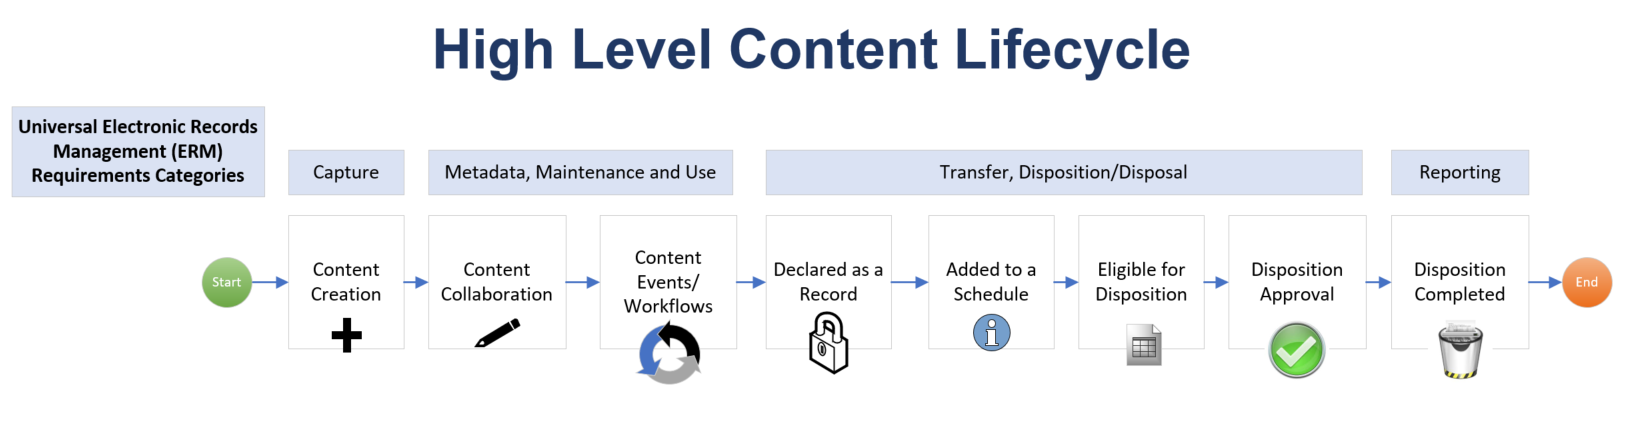 high level content lifecycle